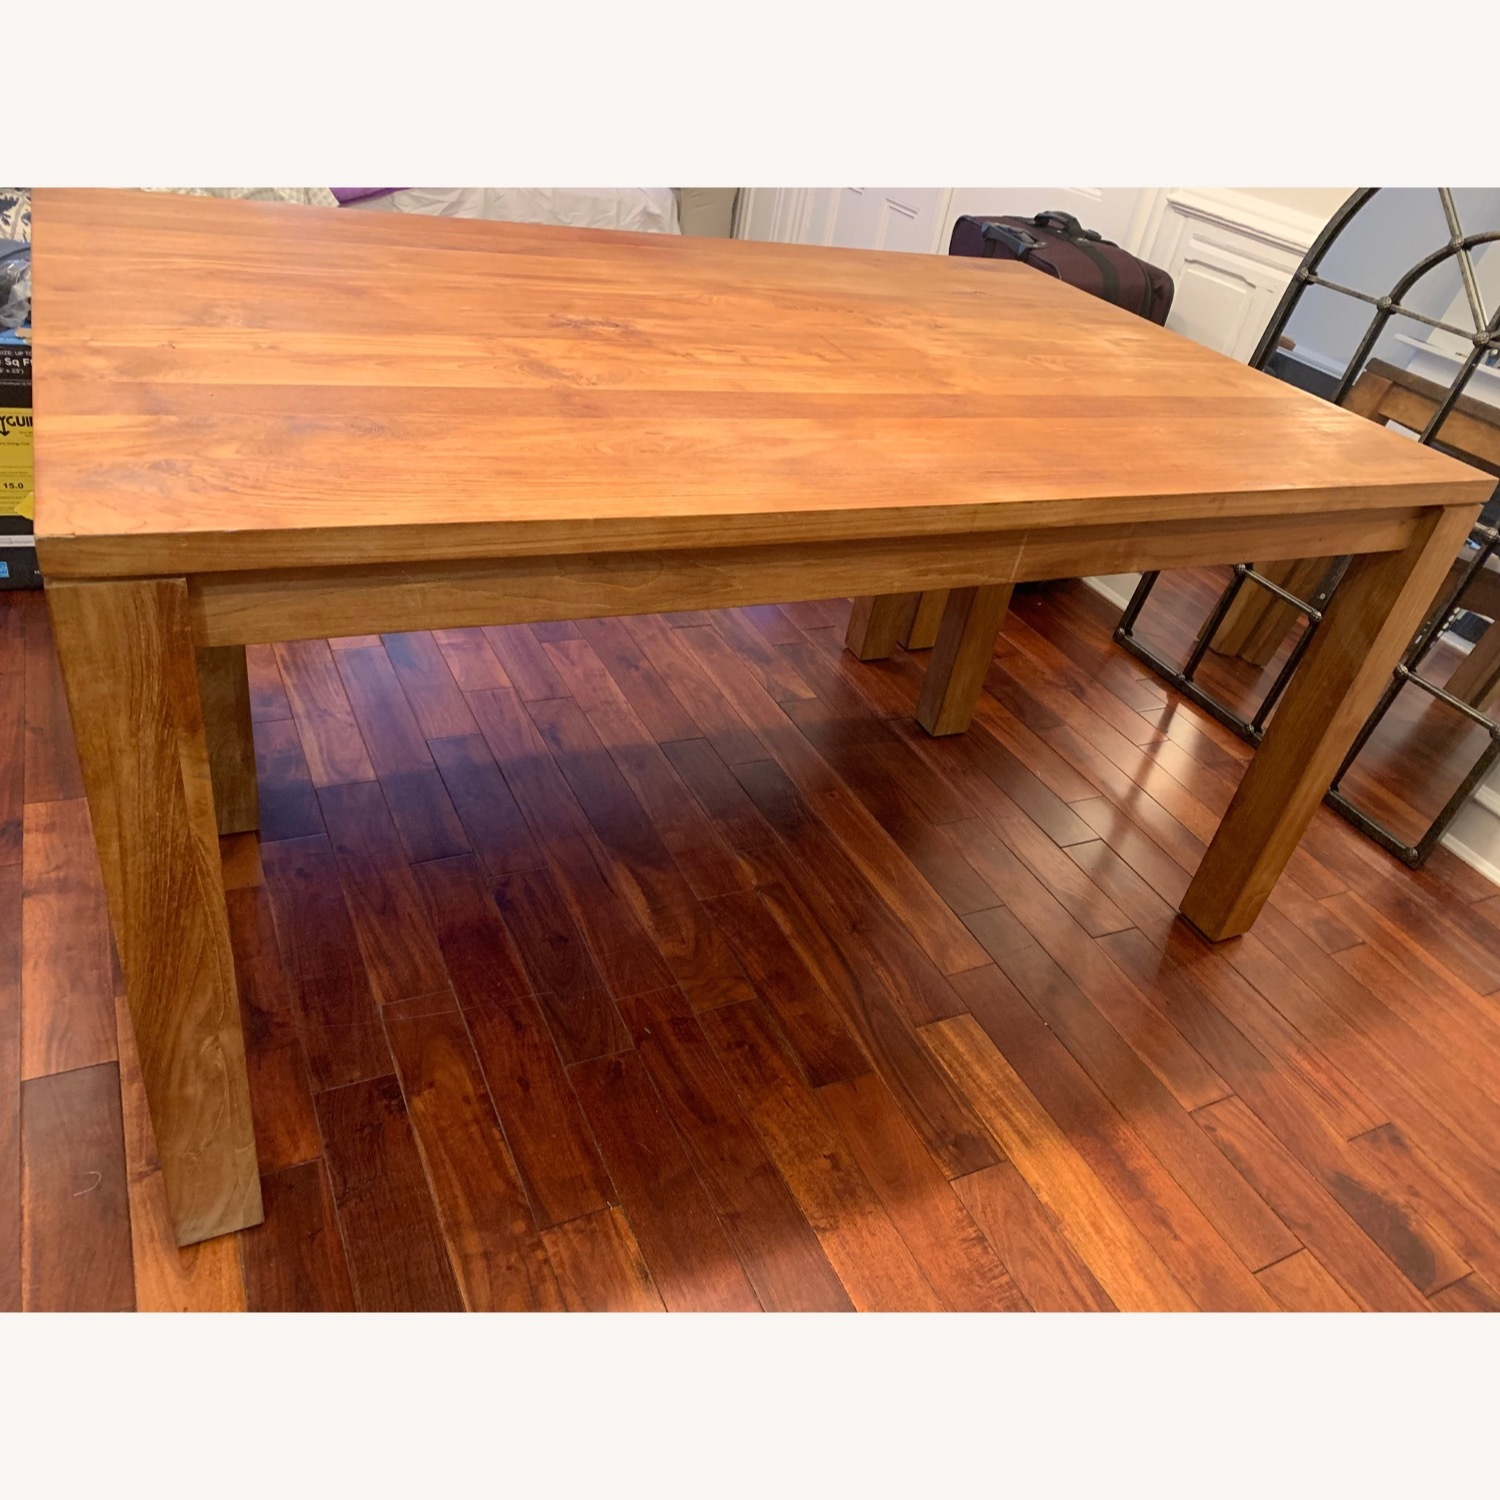 Crate & Barrel Solid Wood Table - image-3